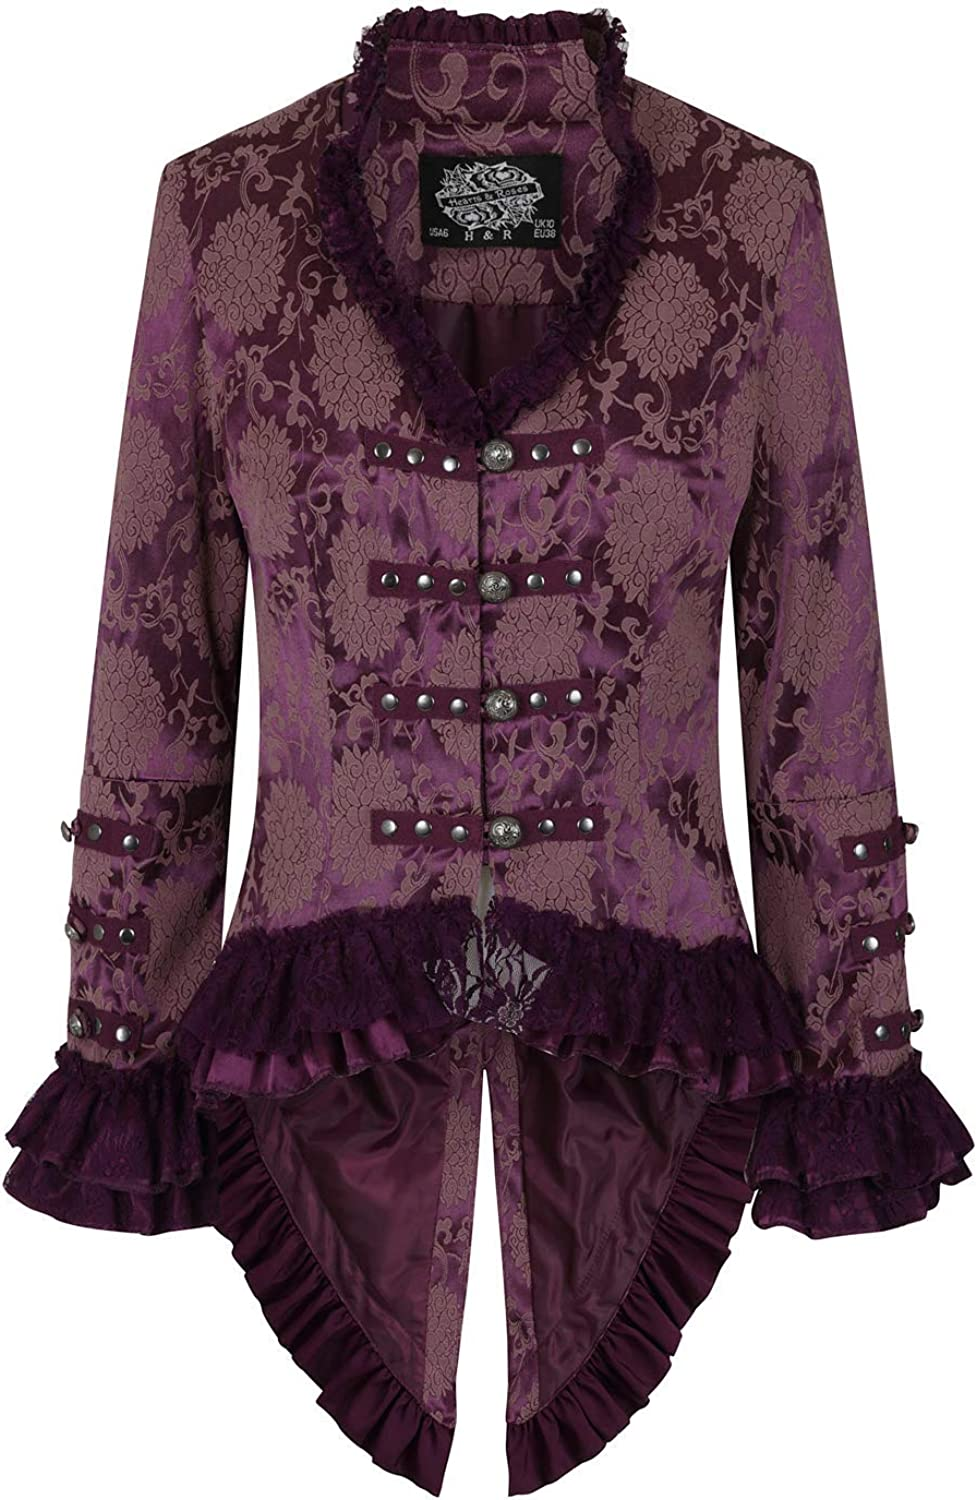 Hearts & Roses Womens Victorian Steampunk Brocade Tailcoat Corset Back